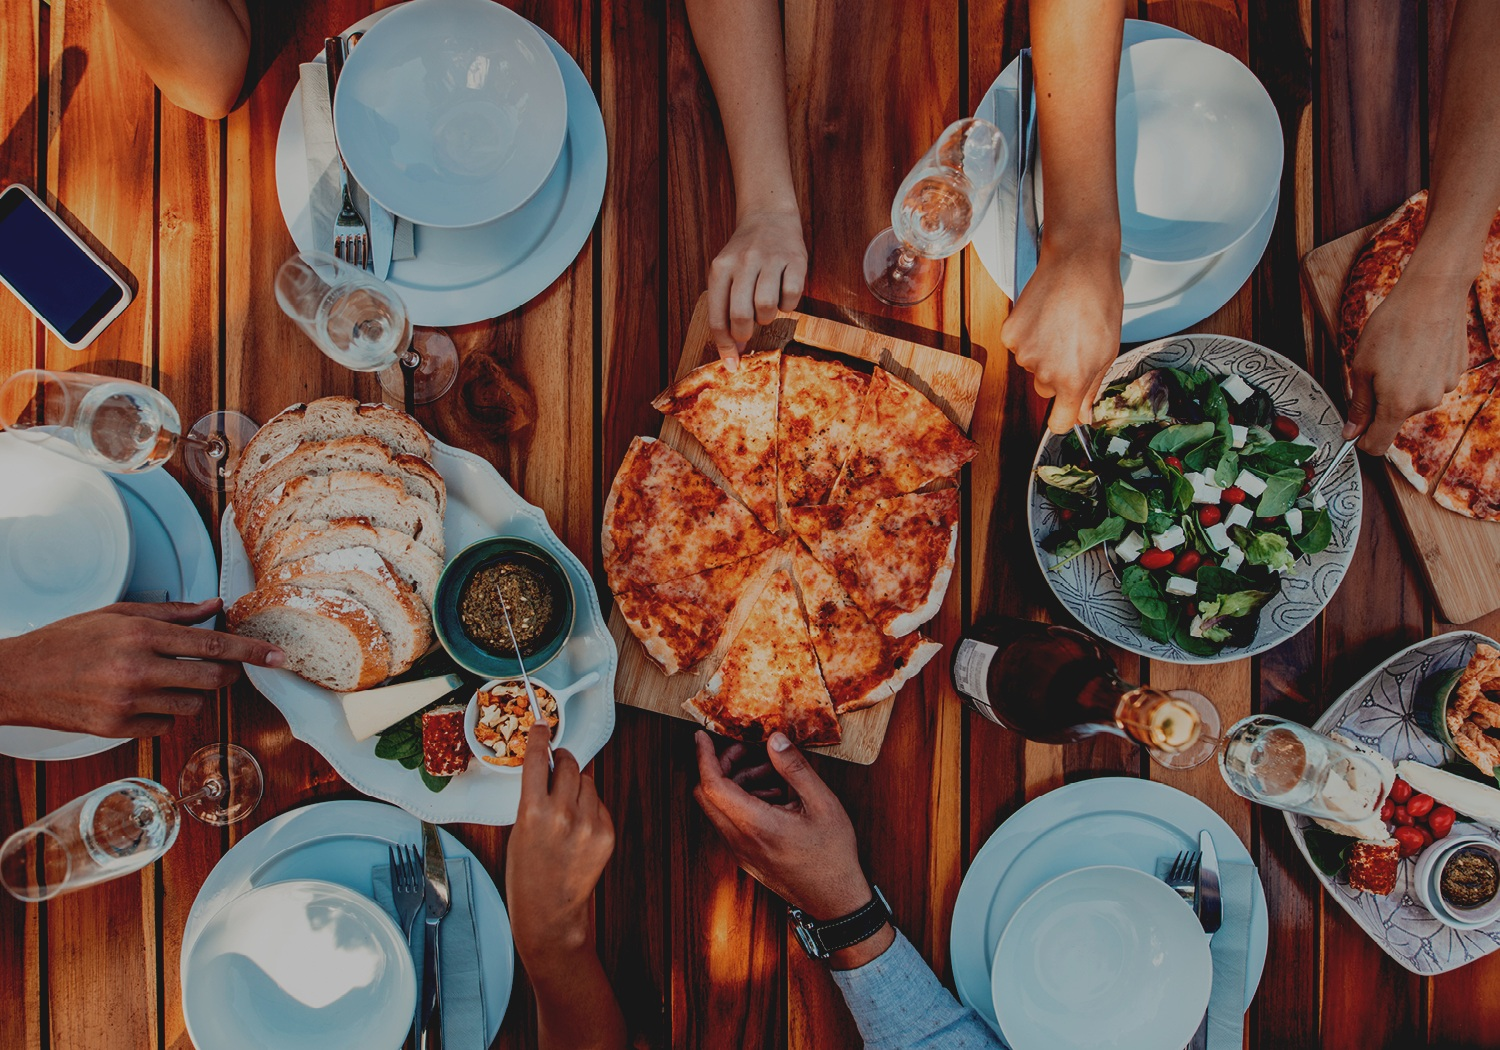 Your dinner party can help  bring a sick child's family together